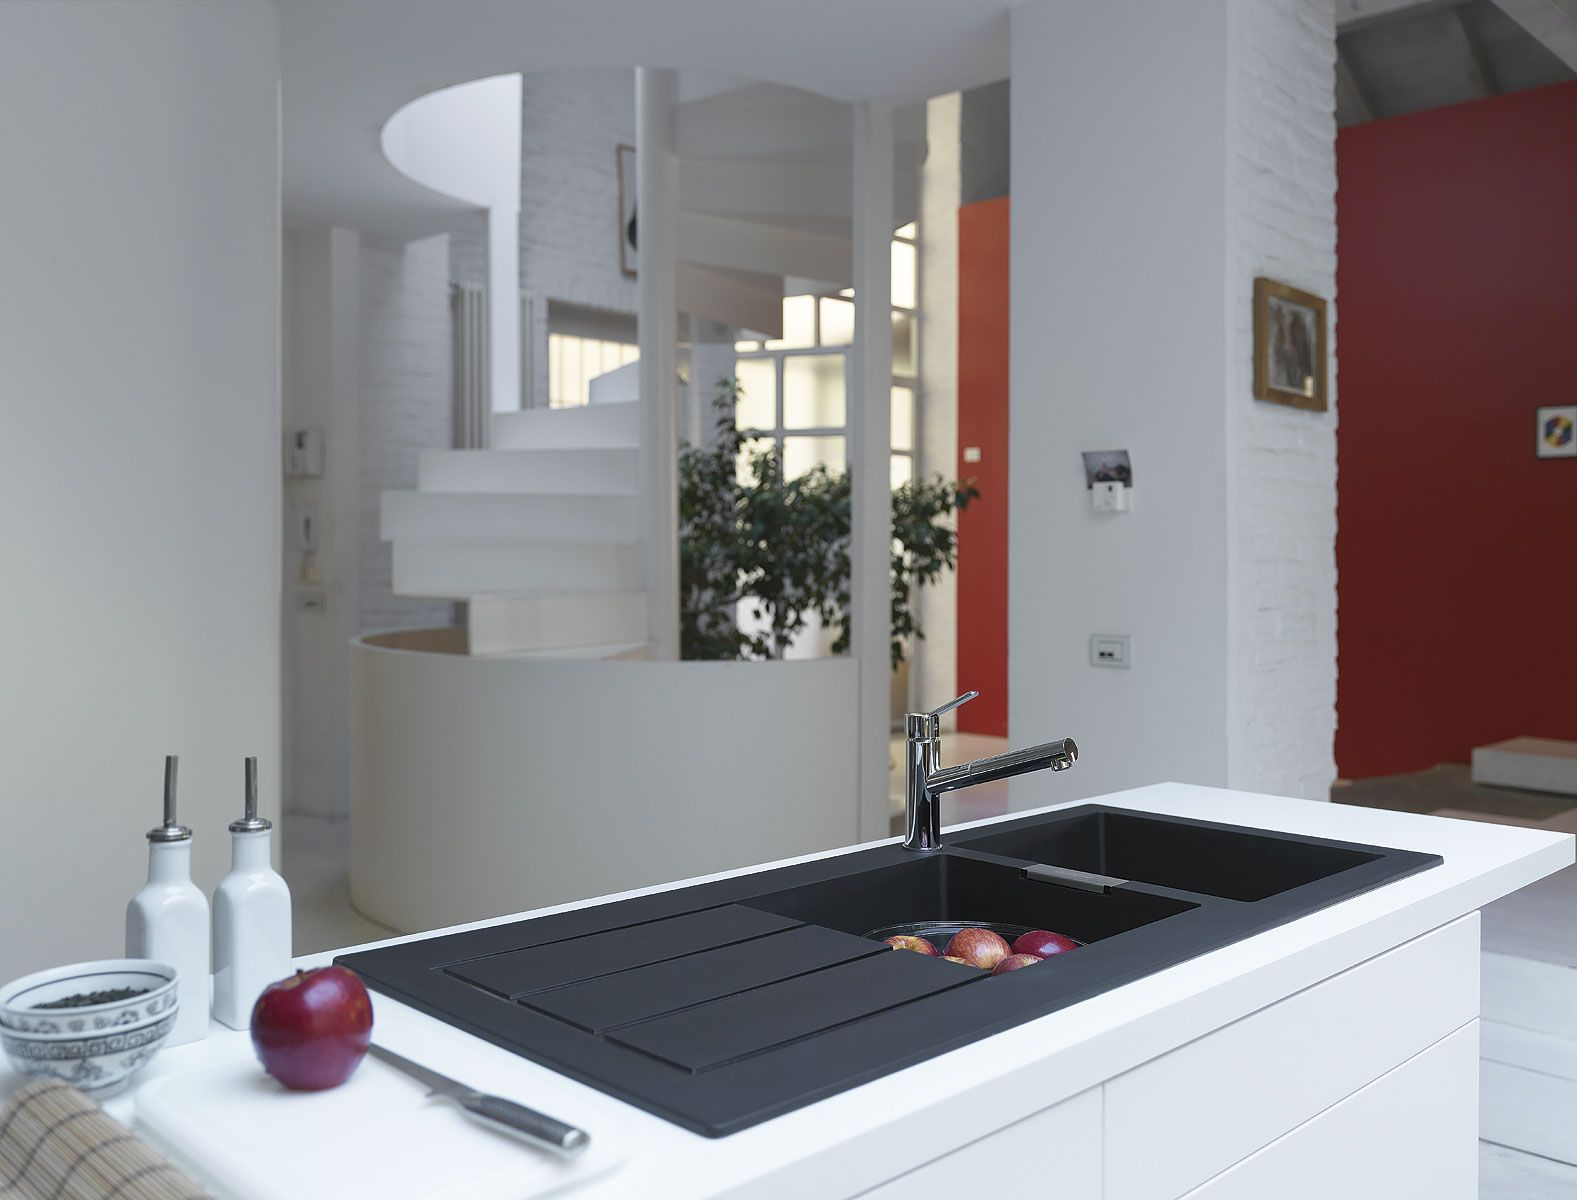 The Franke Sirius Is A Coloured Undermounted Sink Which Feels As Luxurious  As Ceramic But At